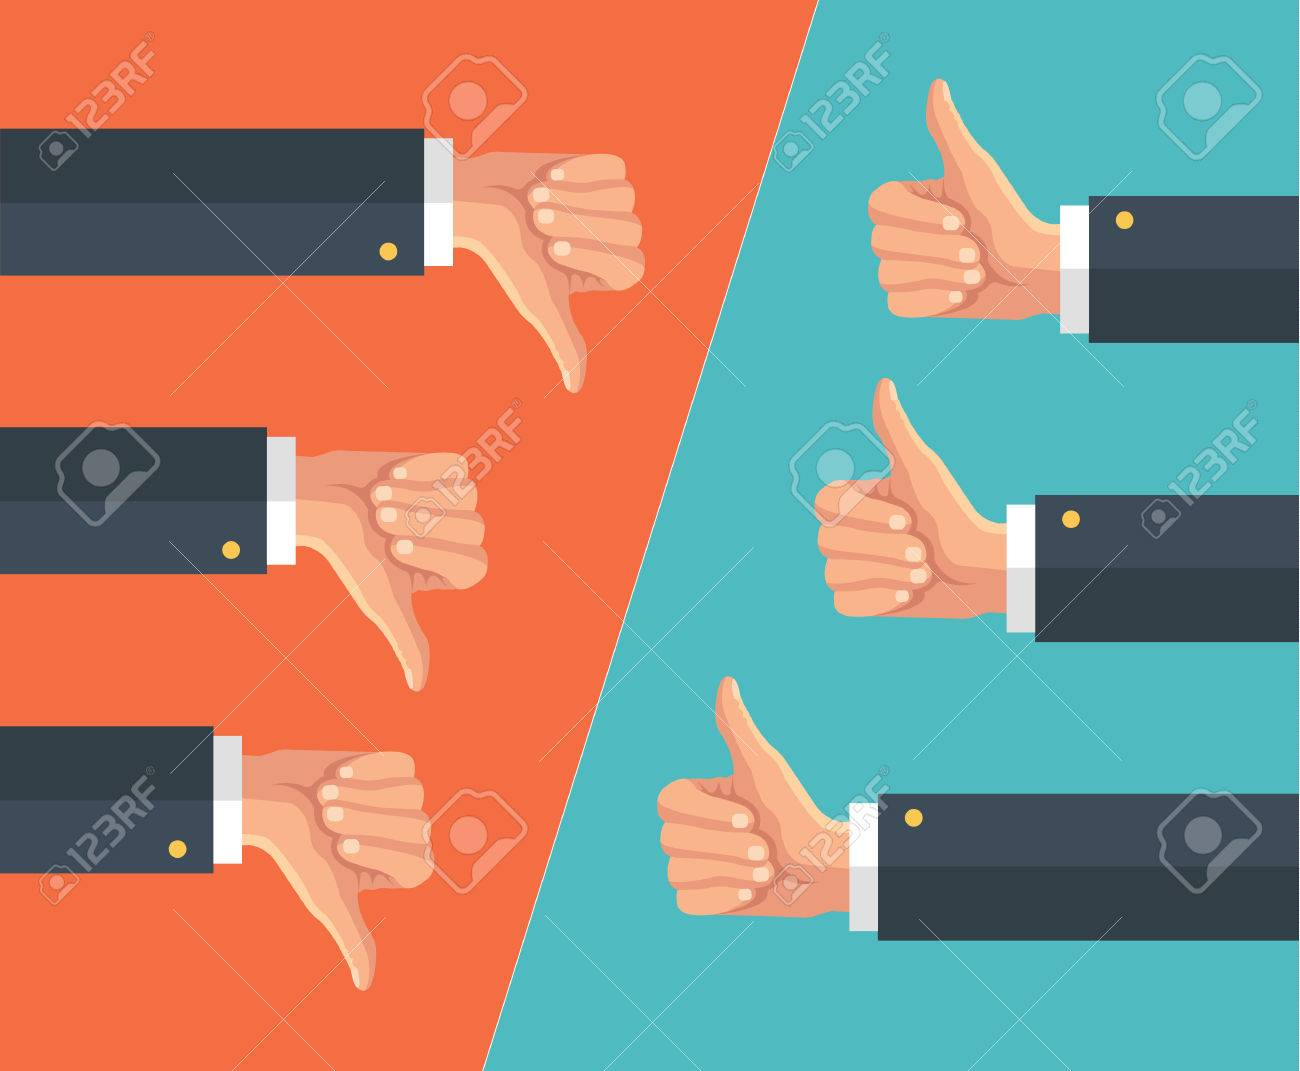 Thumbs up and thumbs down. Vector flat illustration - 48675638